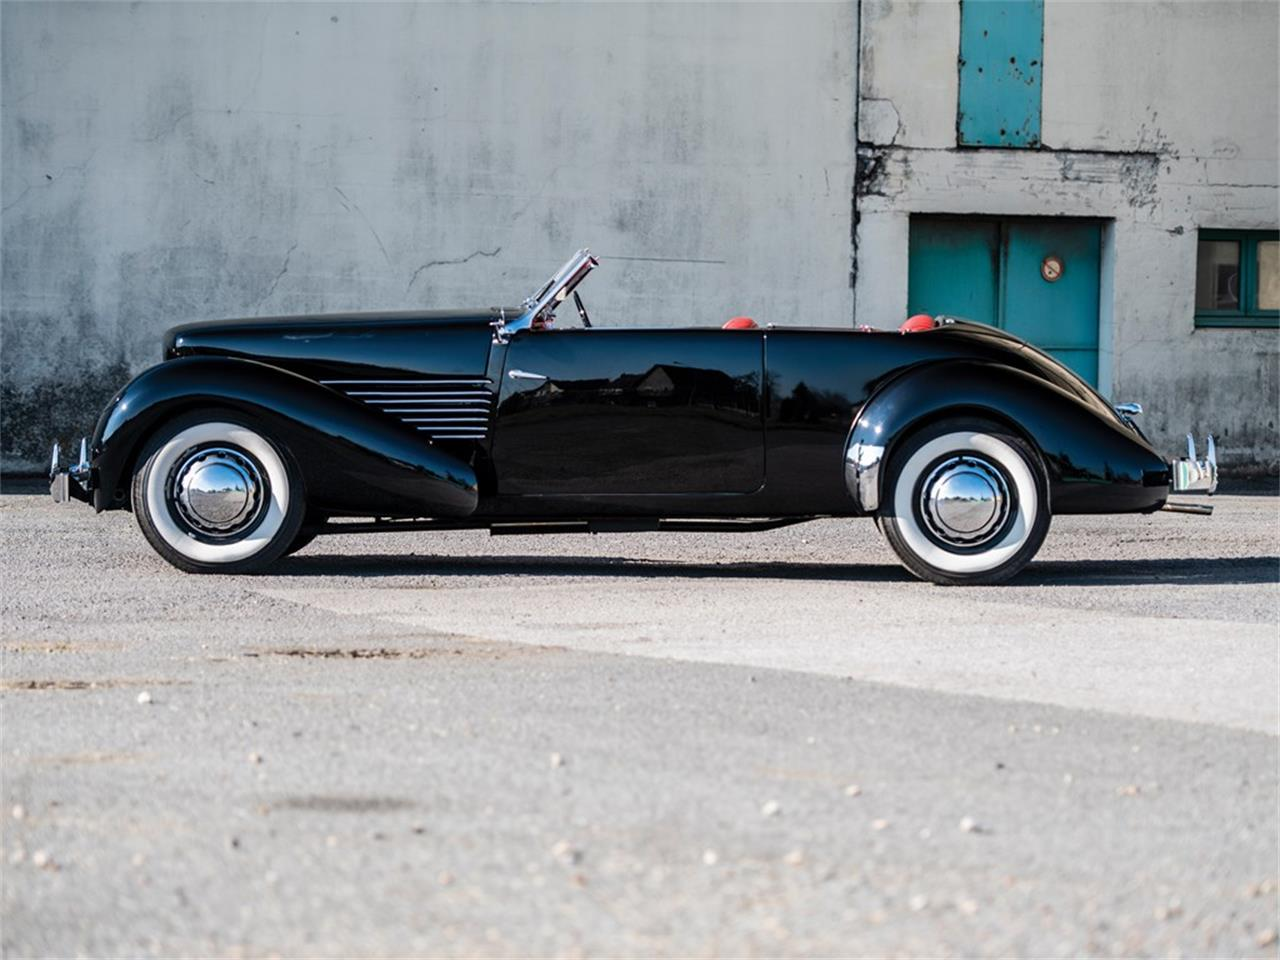 1936 Cord Phaeton for sale in Essen, Other – photo 5